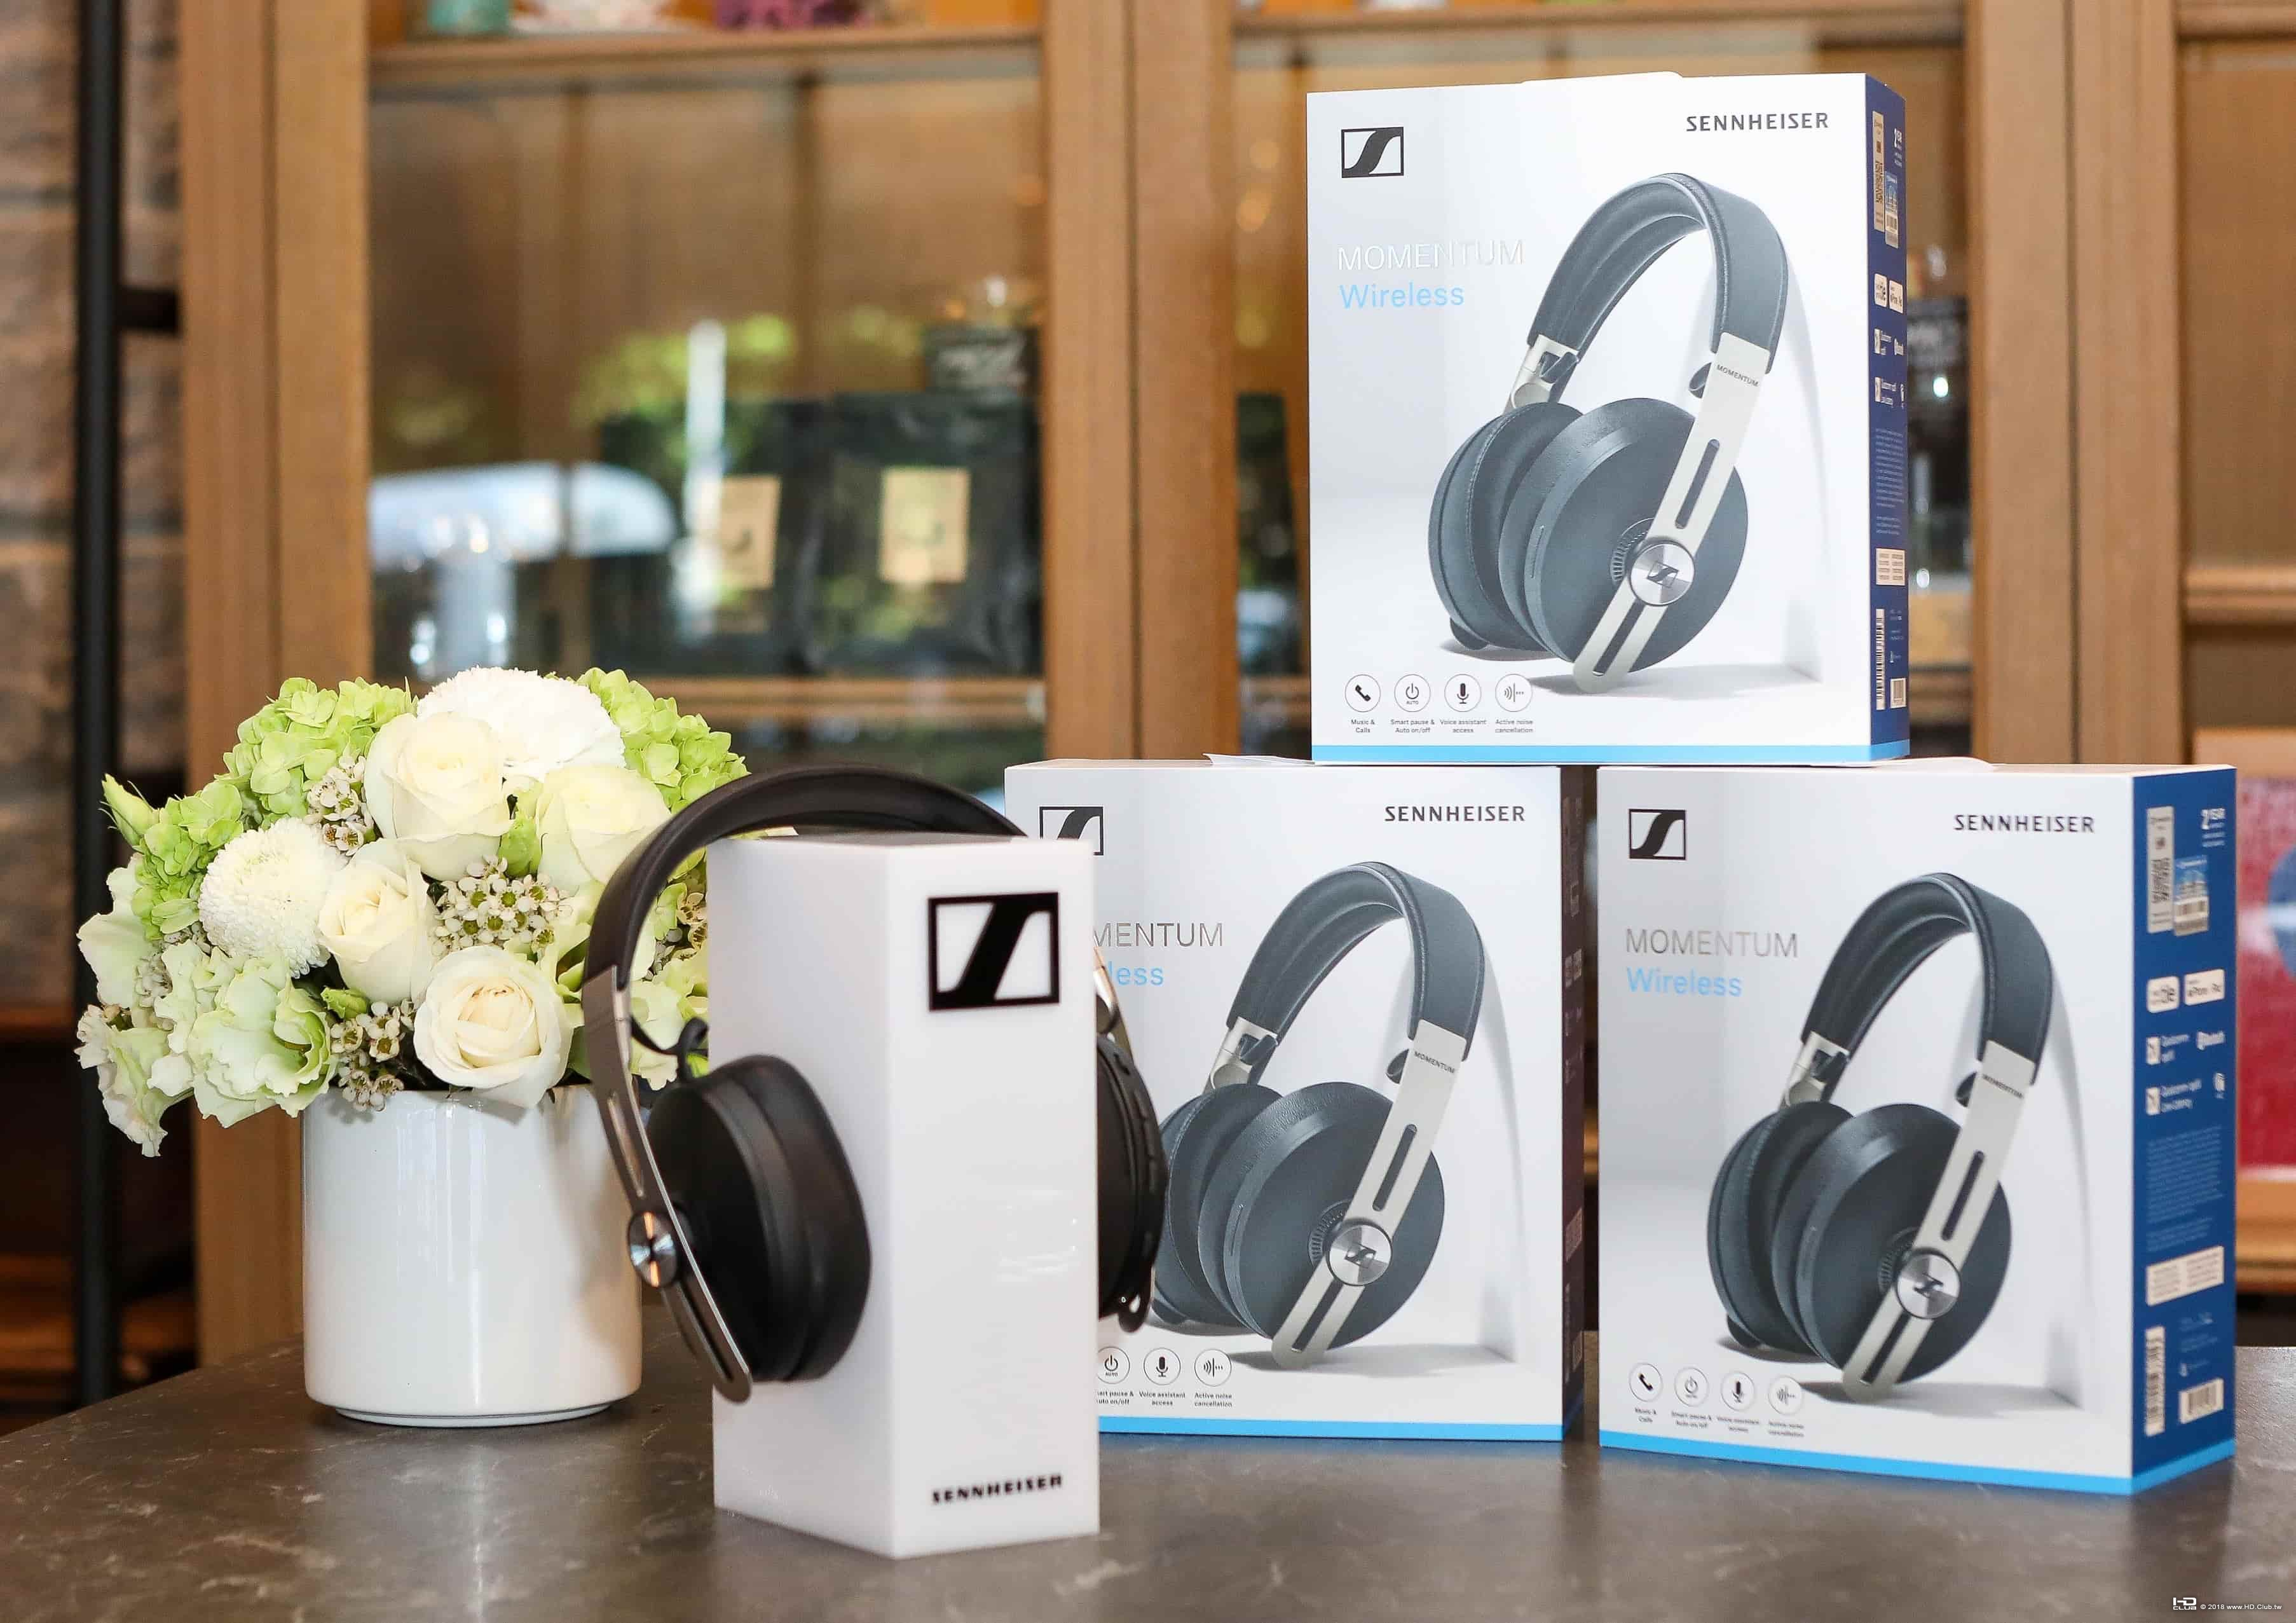 SENNHEISER 全新 MOMENTUM WIRELESS智能耳機(2).jpg